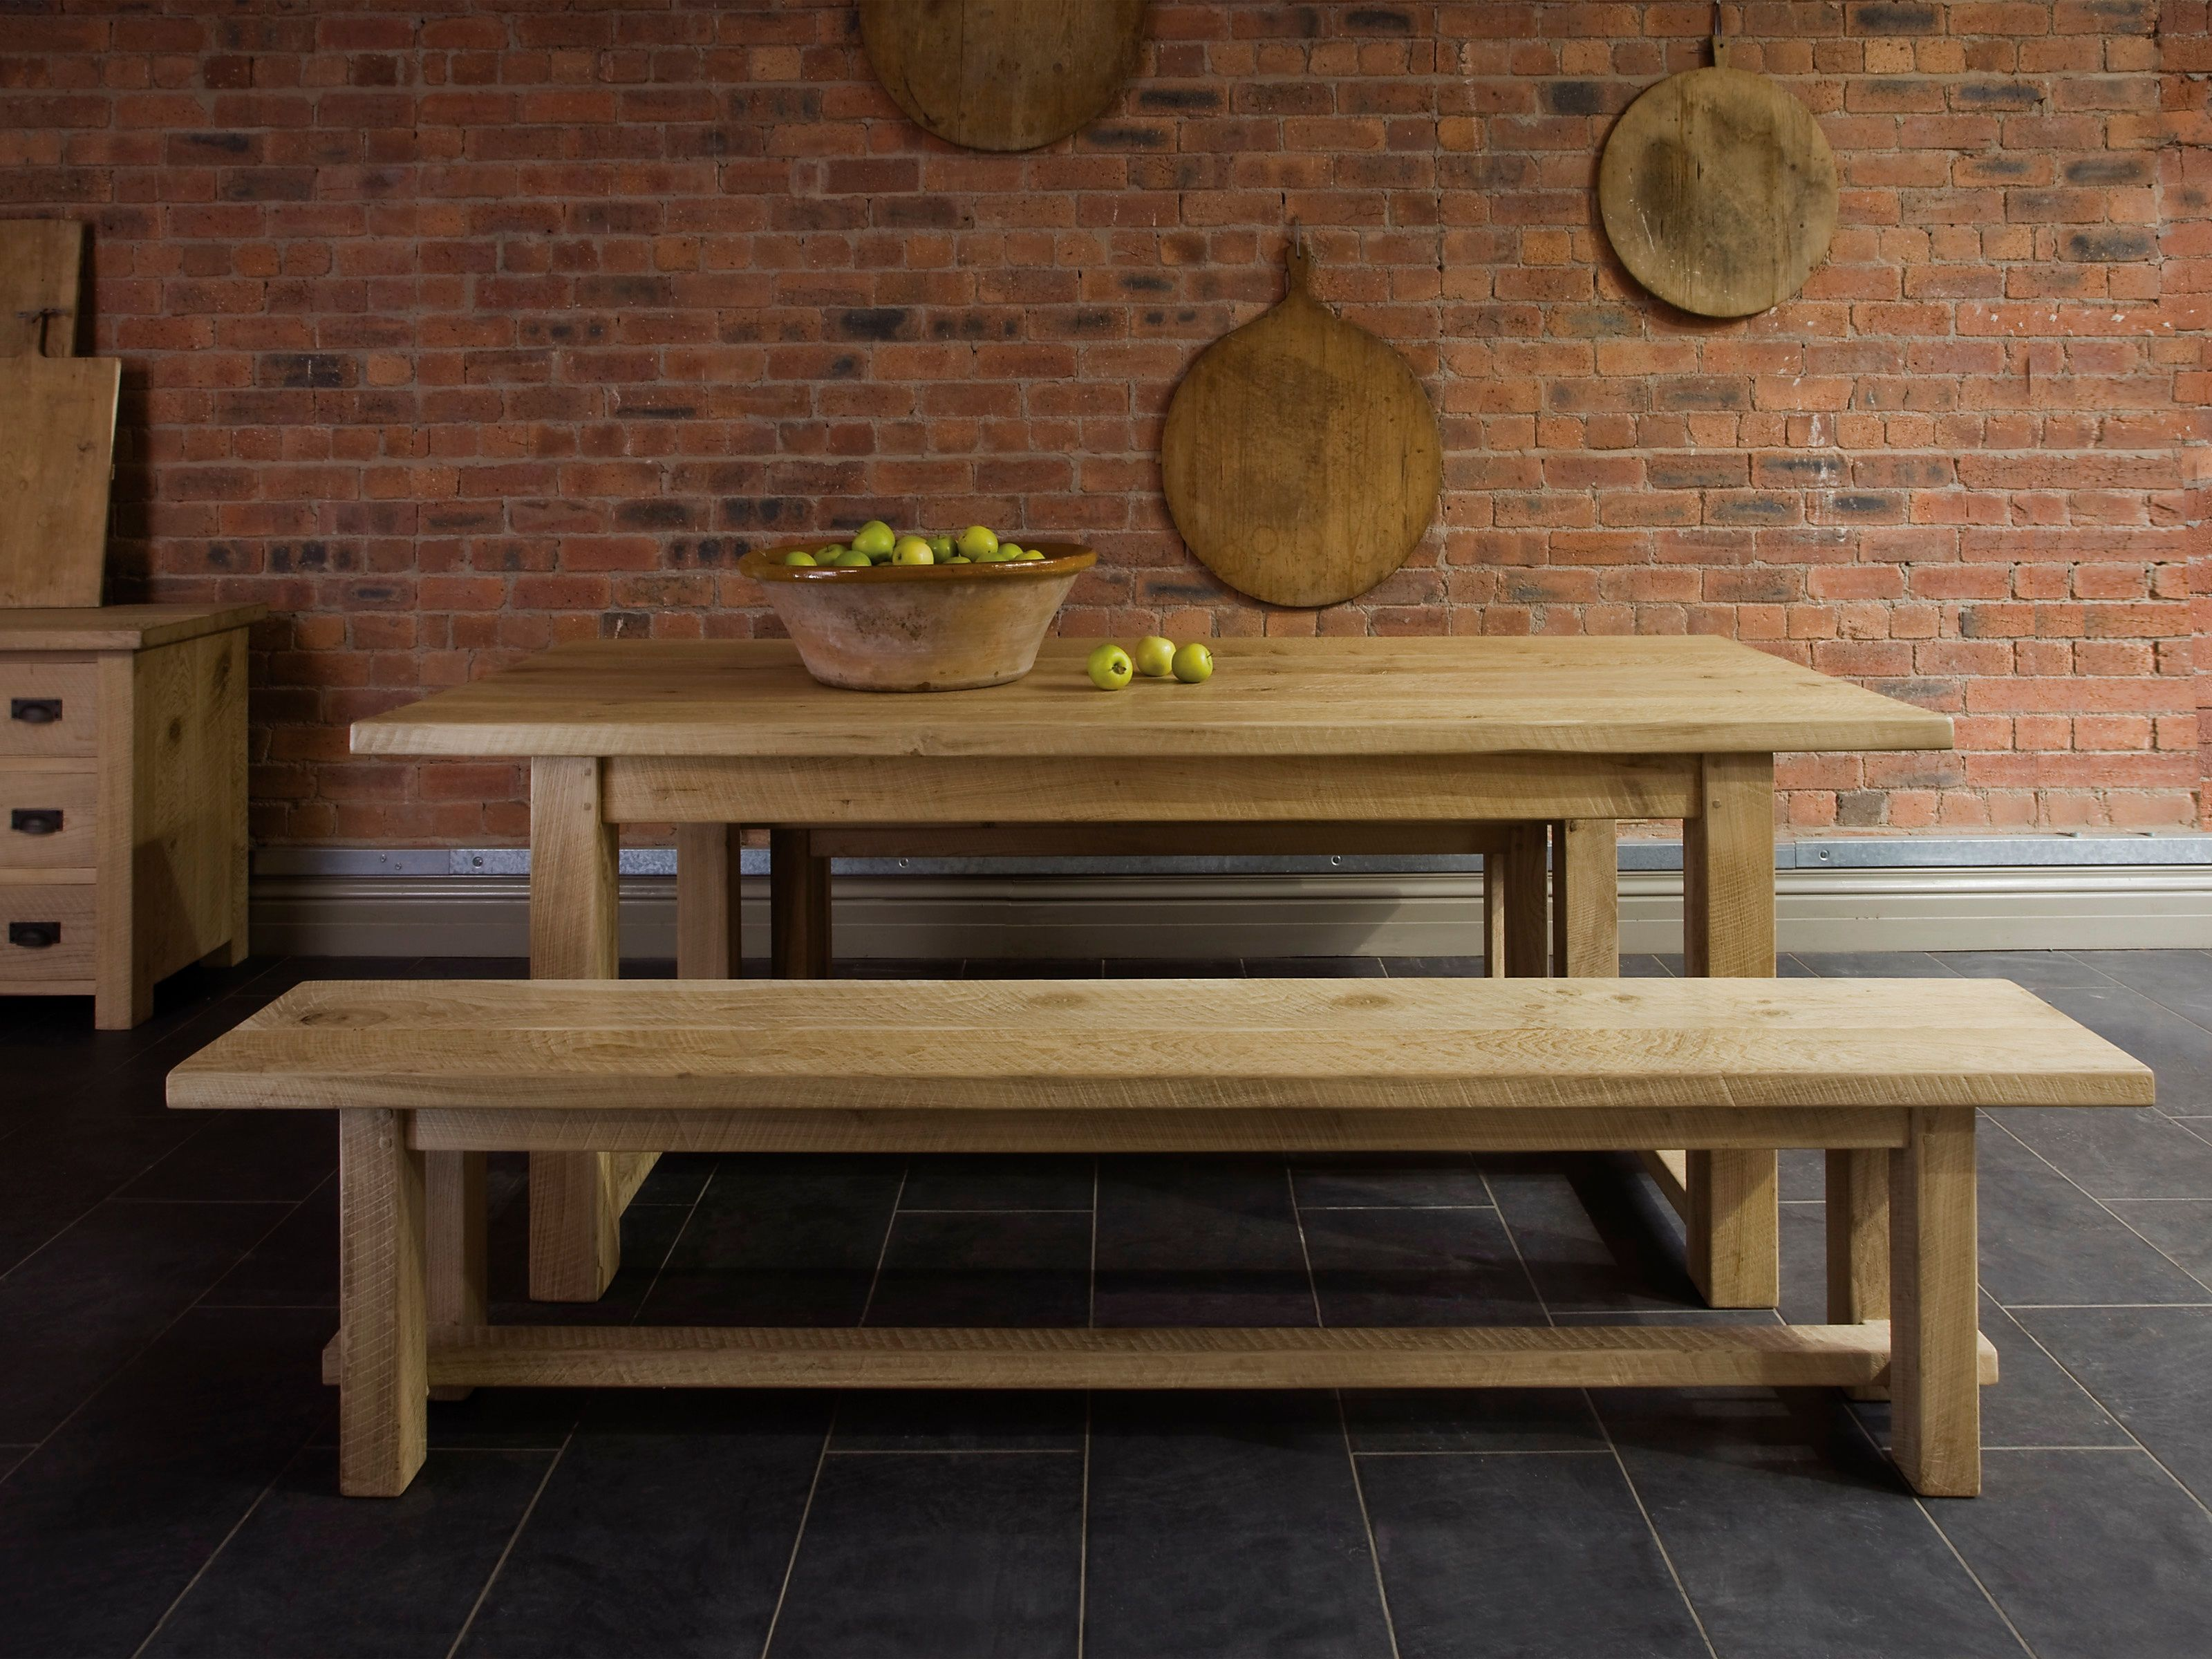 wooden kitchen tables Farmhouse wooden kitchen tables for interior designs will be best suited in rustic country styles Farmhouse kitchen tables generally constructed from oak